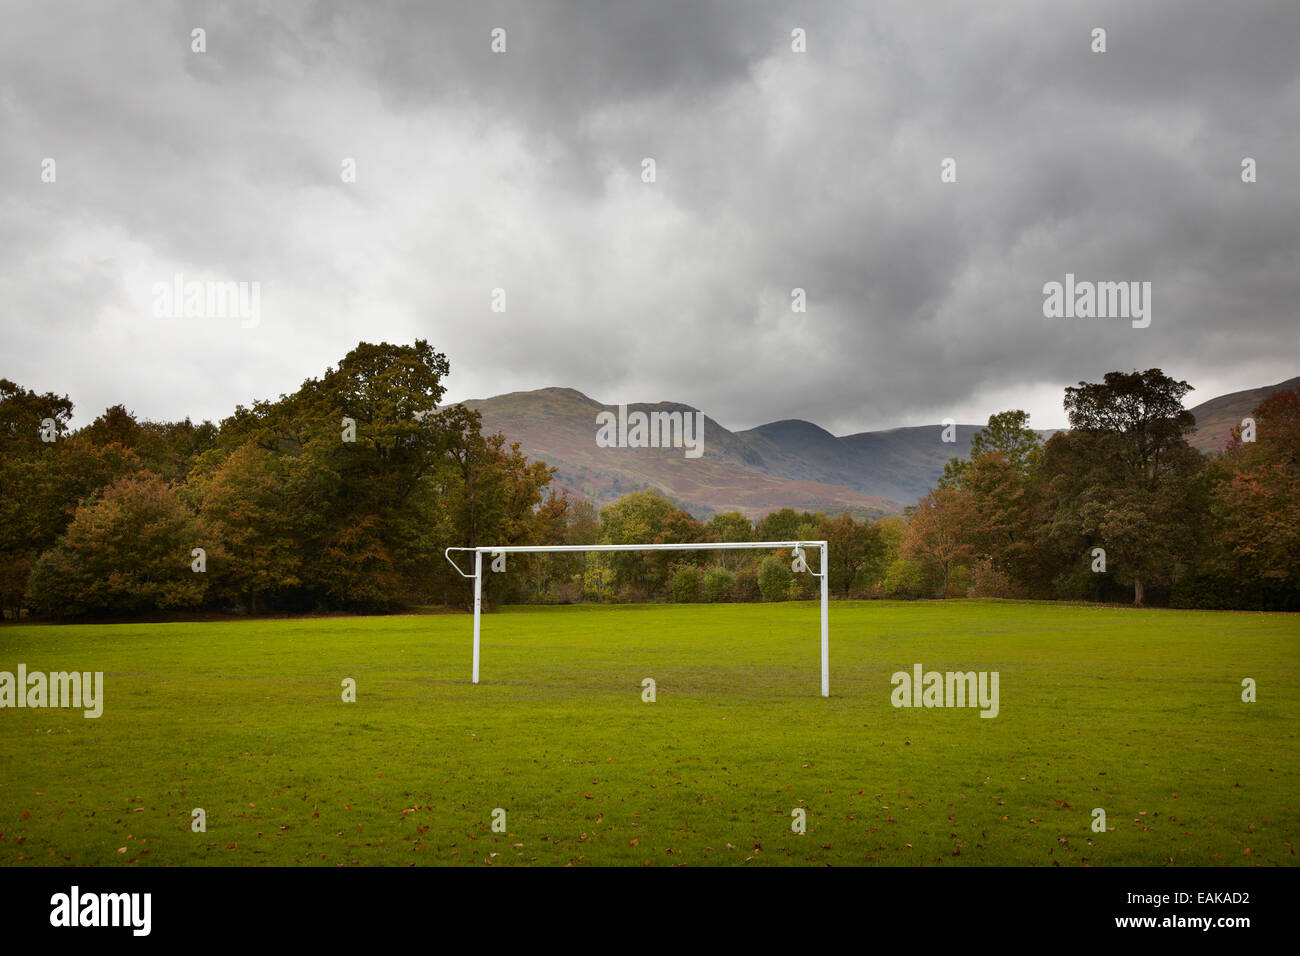 football pitch in autumn with mountains behind and trees, winter football season bad weather, Lake district England - Stock Image